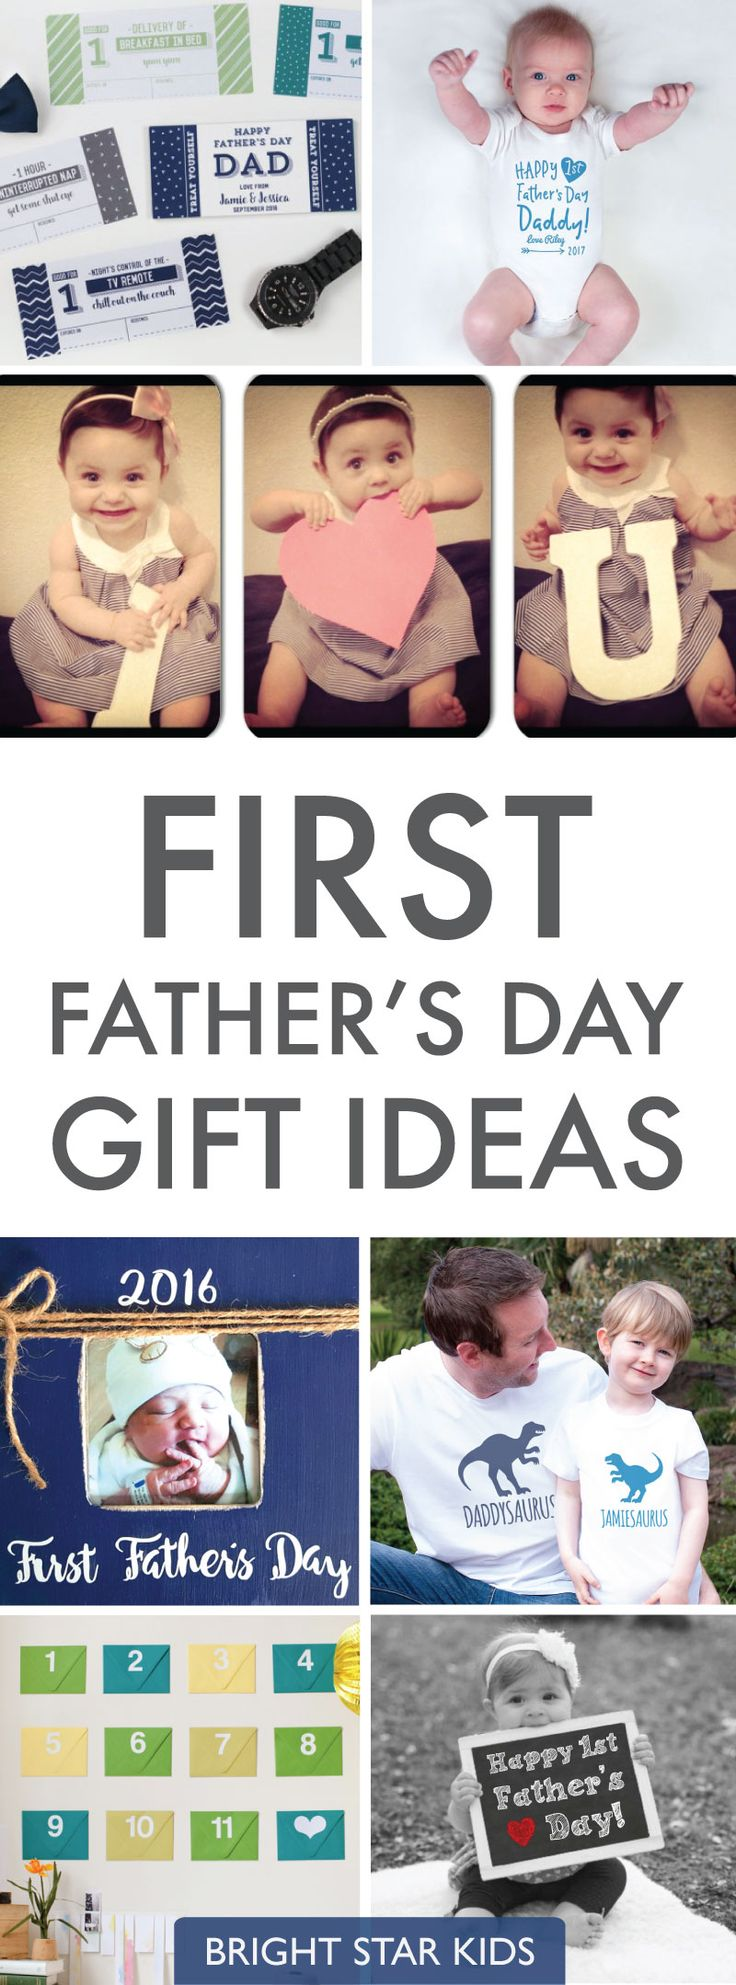 First fathers day gift ideas // first father's day gifts